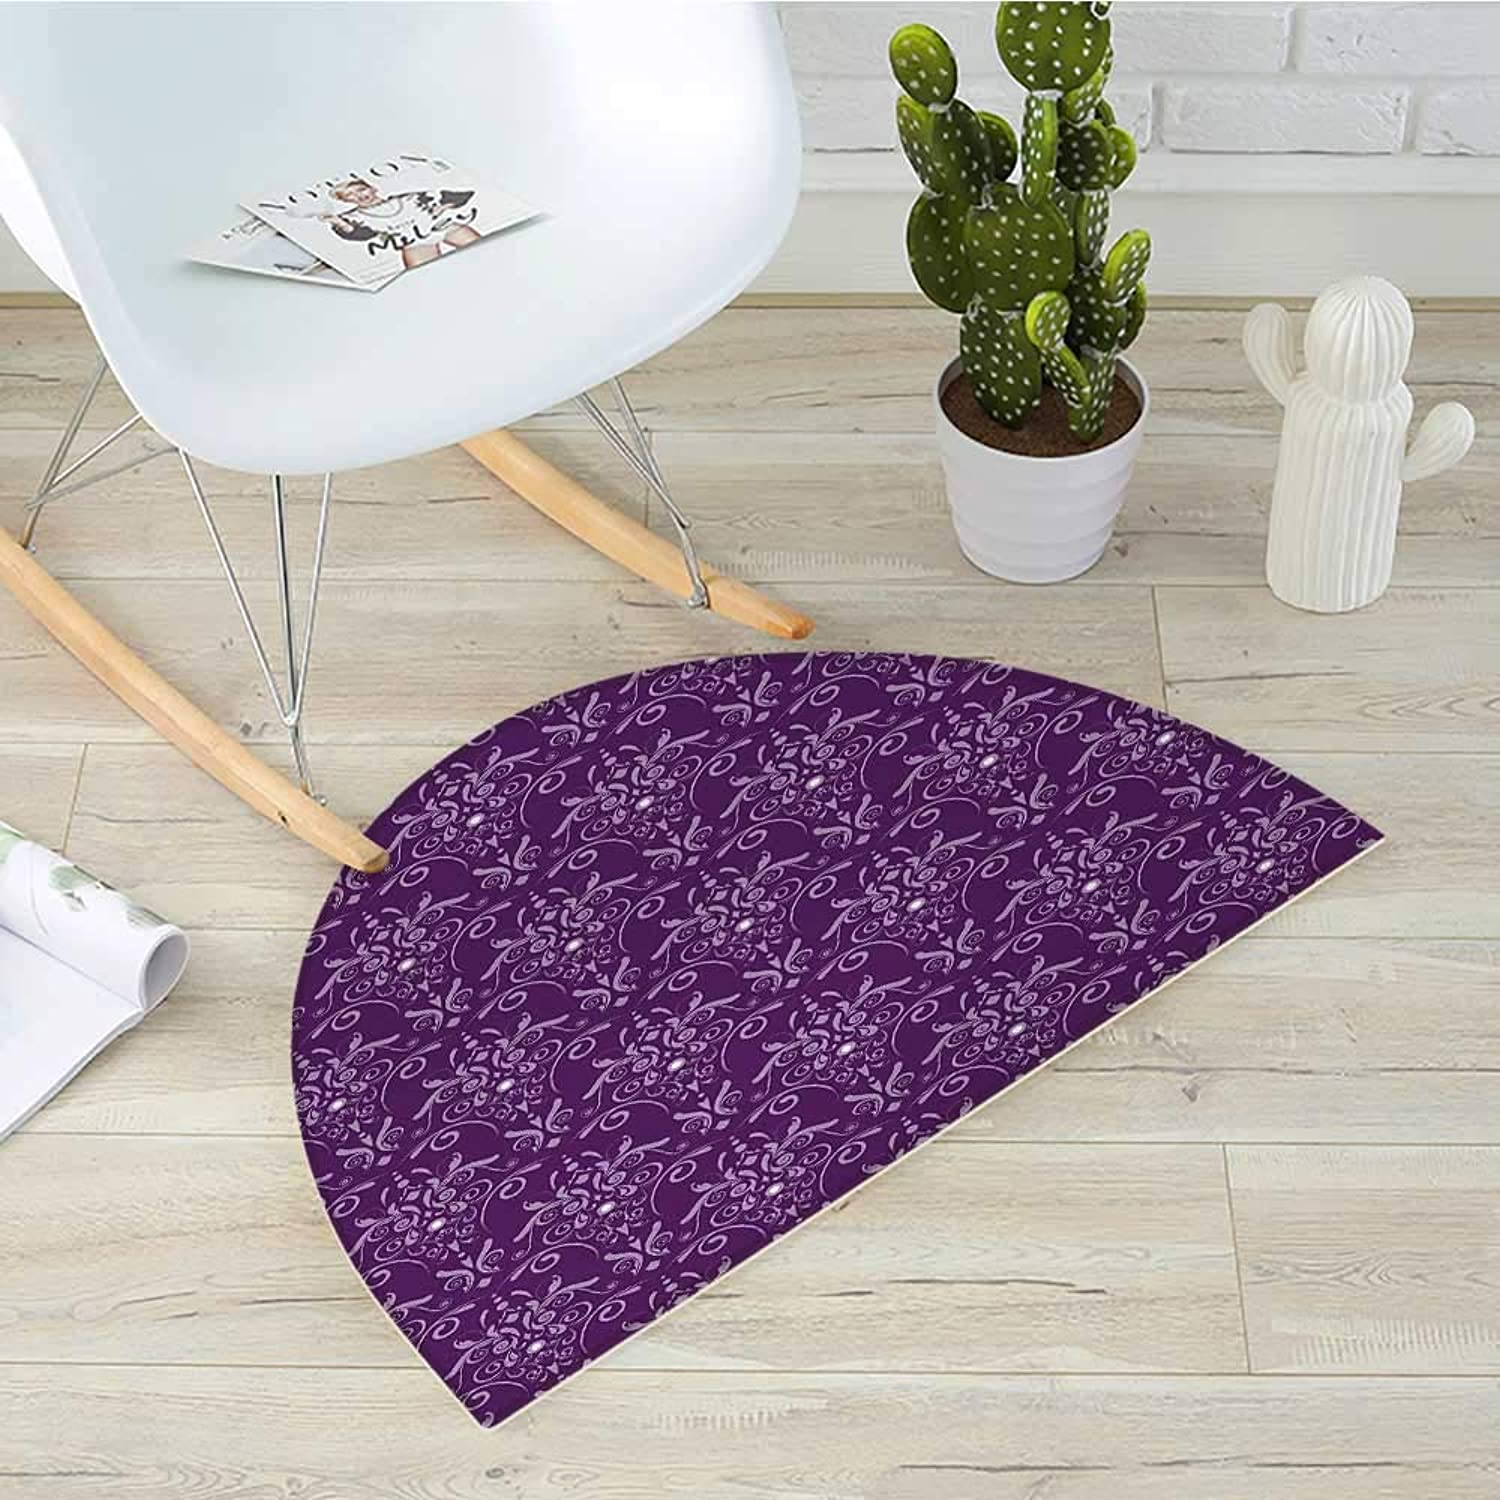 Eggplant Semicircle Doormat Damask Pattern with Symmetrical Abstract Leaves and Swirls Forming Unified Look Halfmoon doormats H 43.3  xD 64.9  Purple purplec